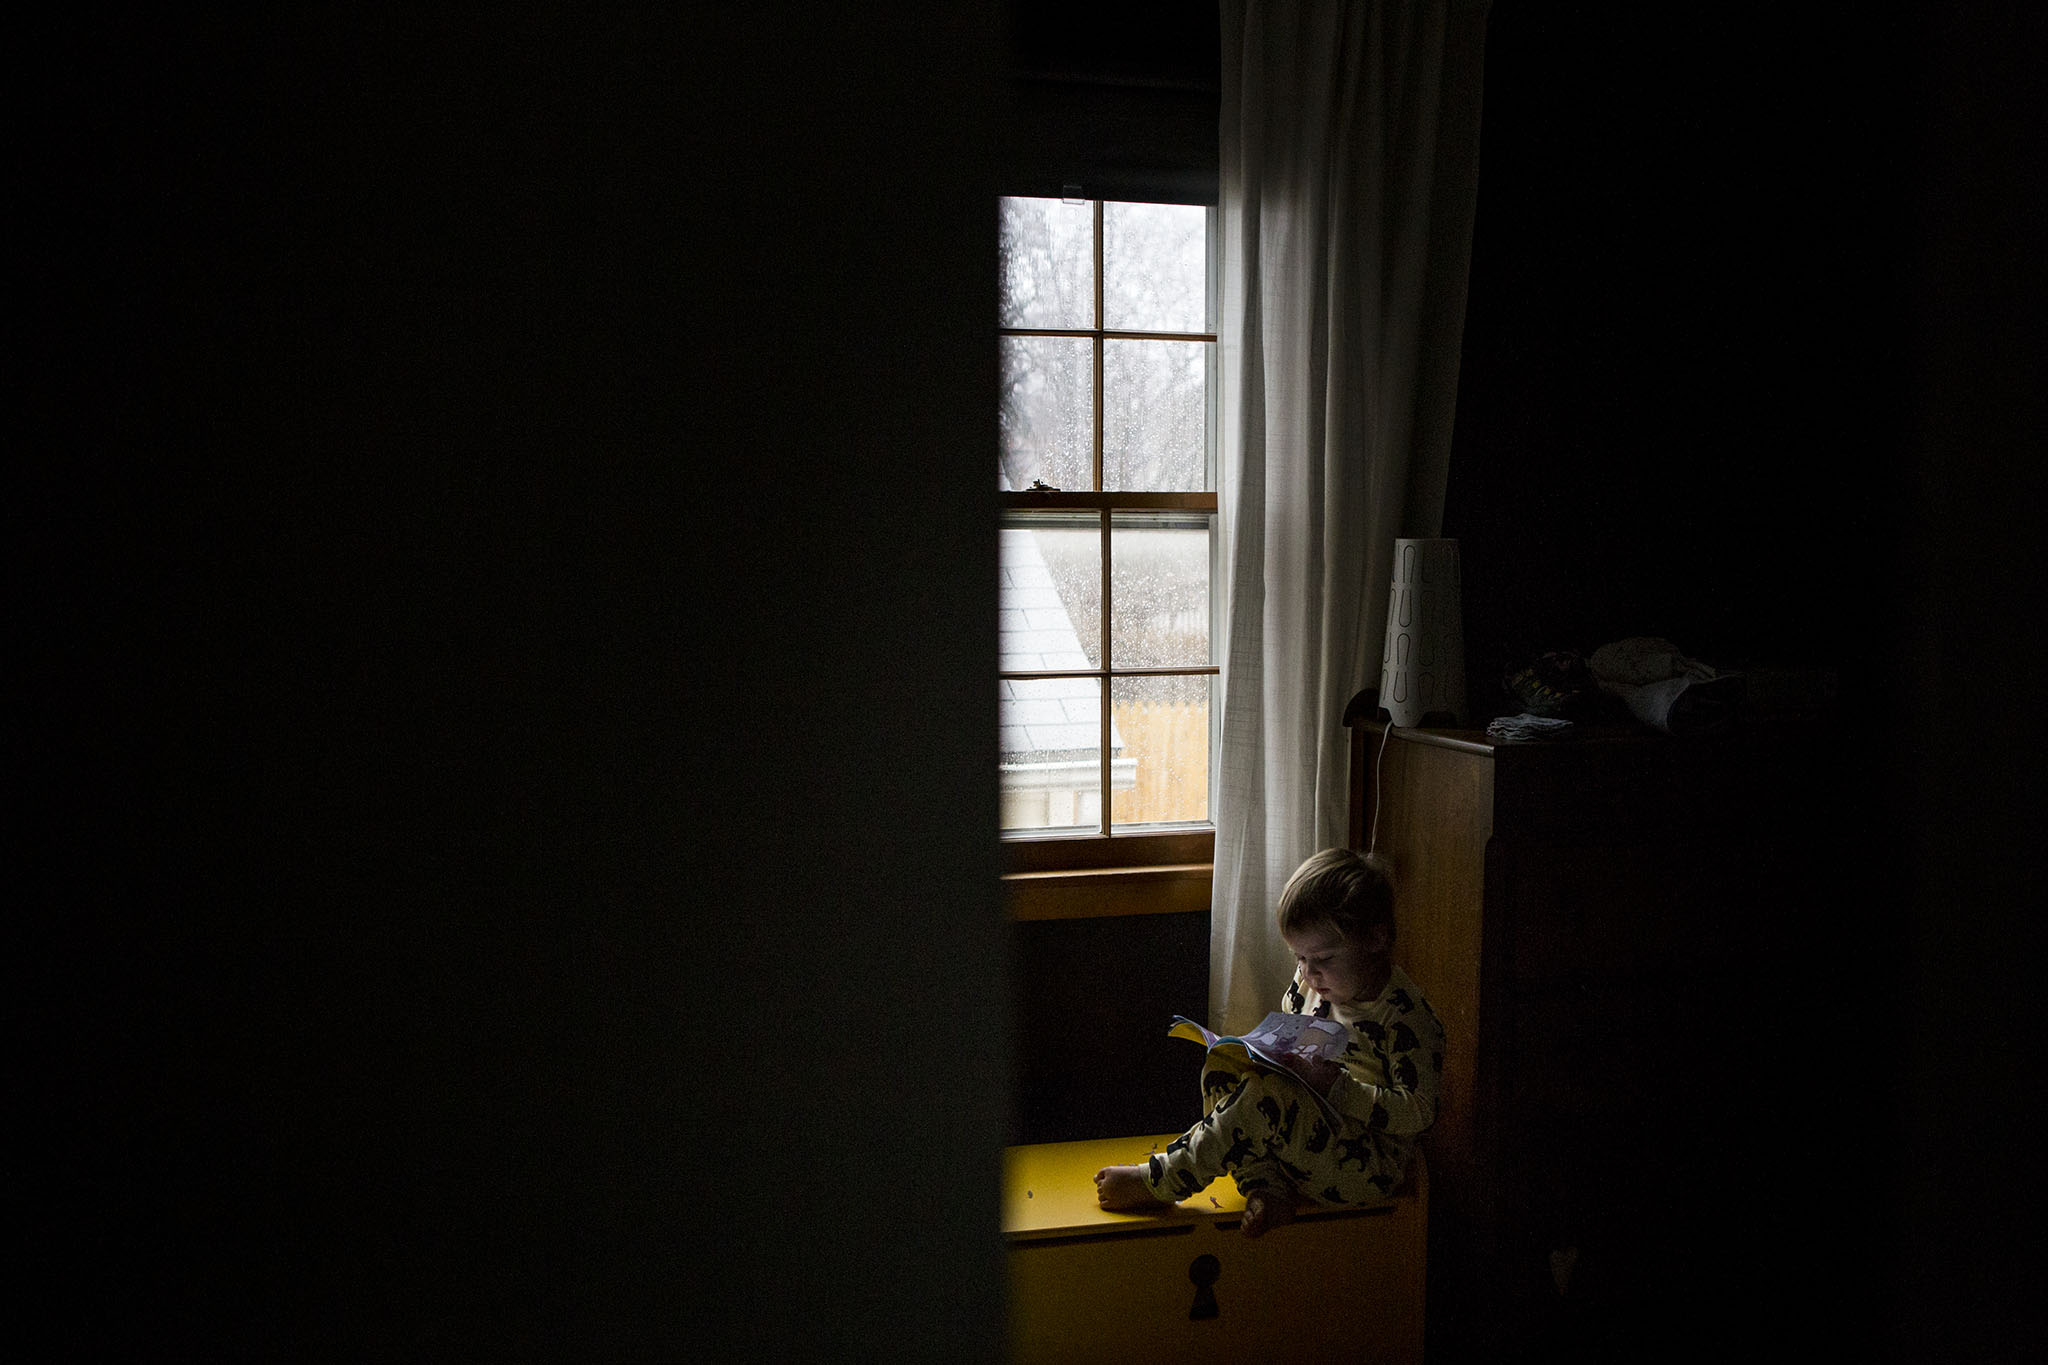 Lifestyle family photography in Connecticut with toddler girl reading in a window.